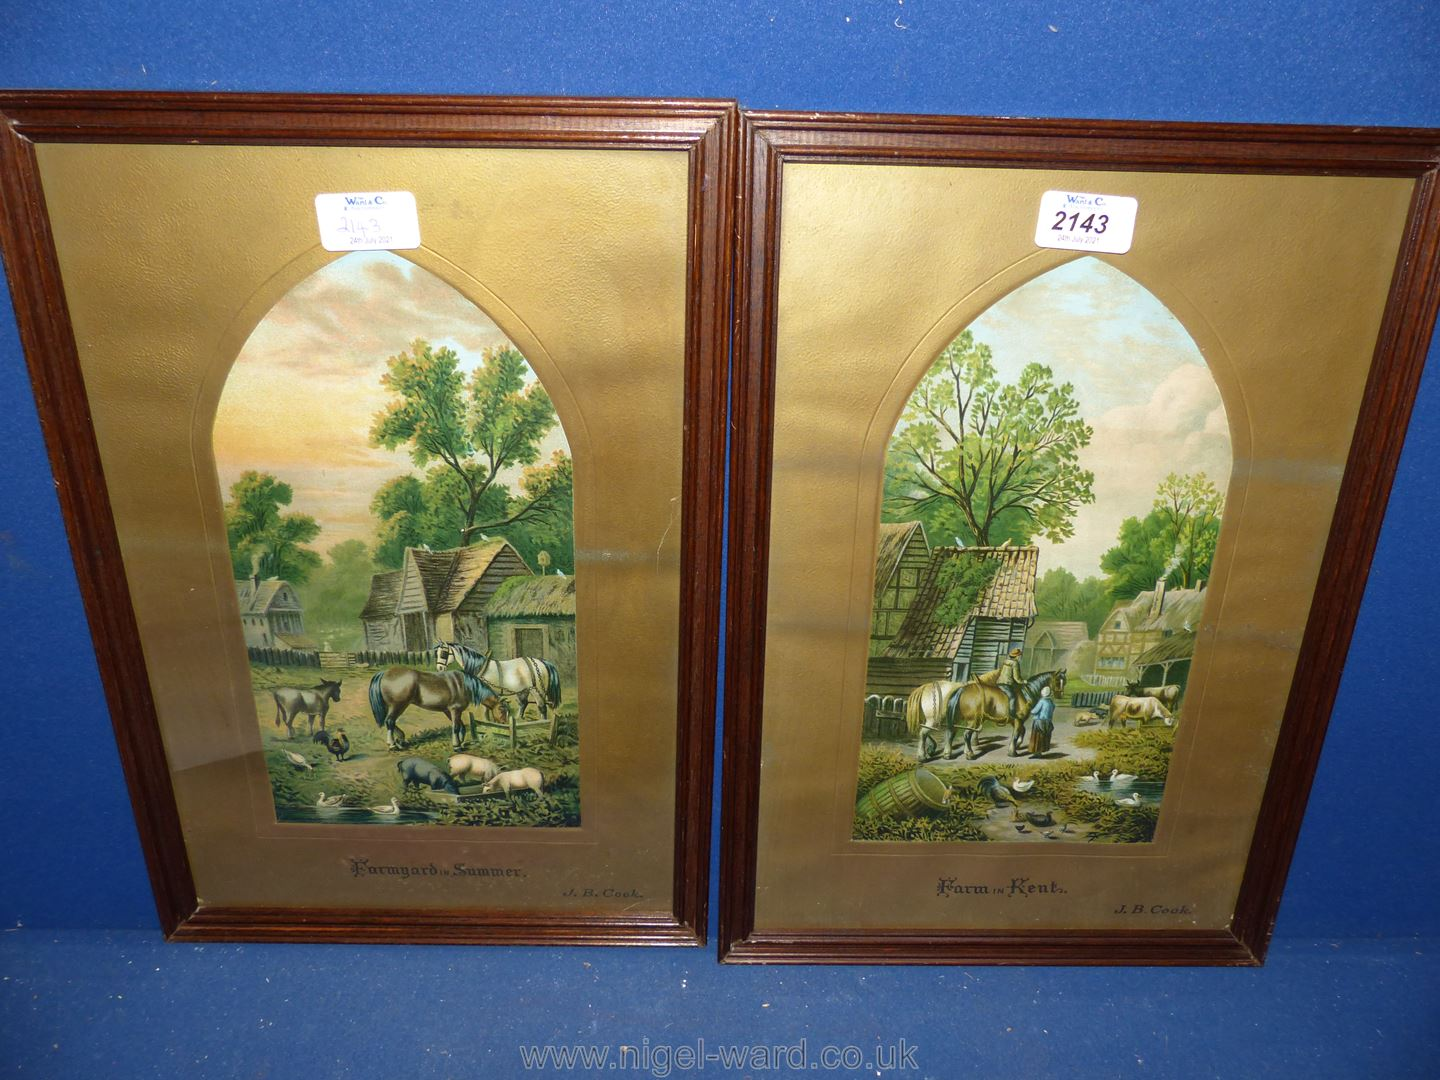 A pair of framed pictures by J.B. Cook.